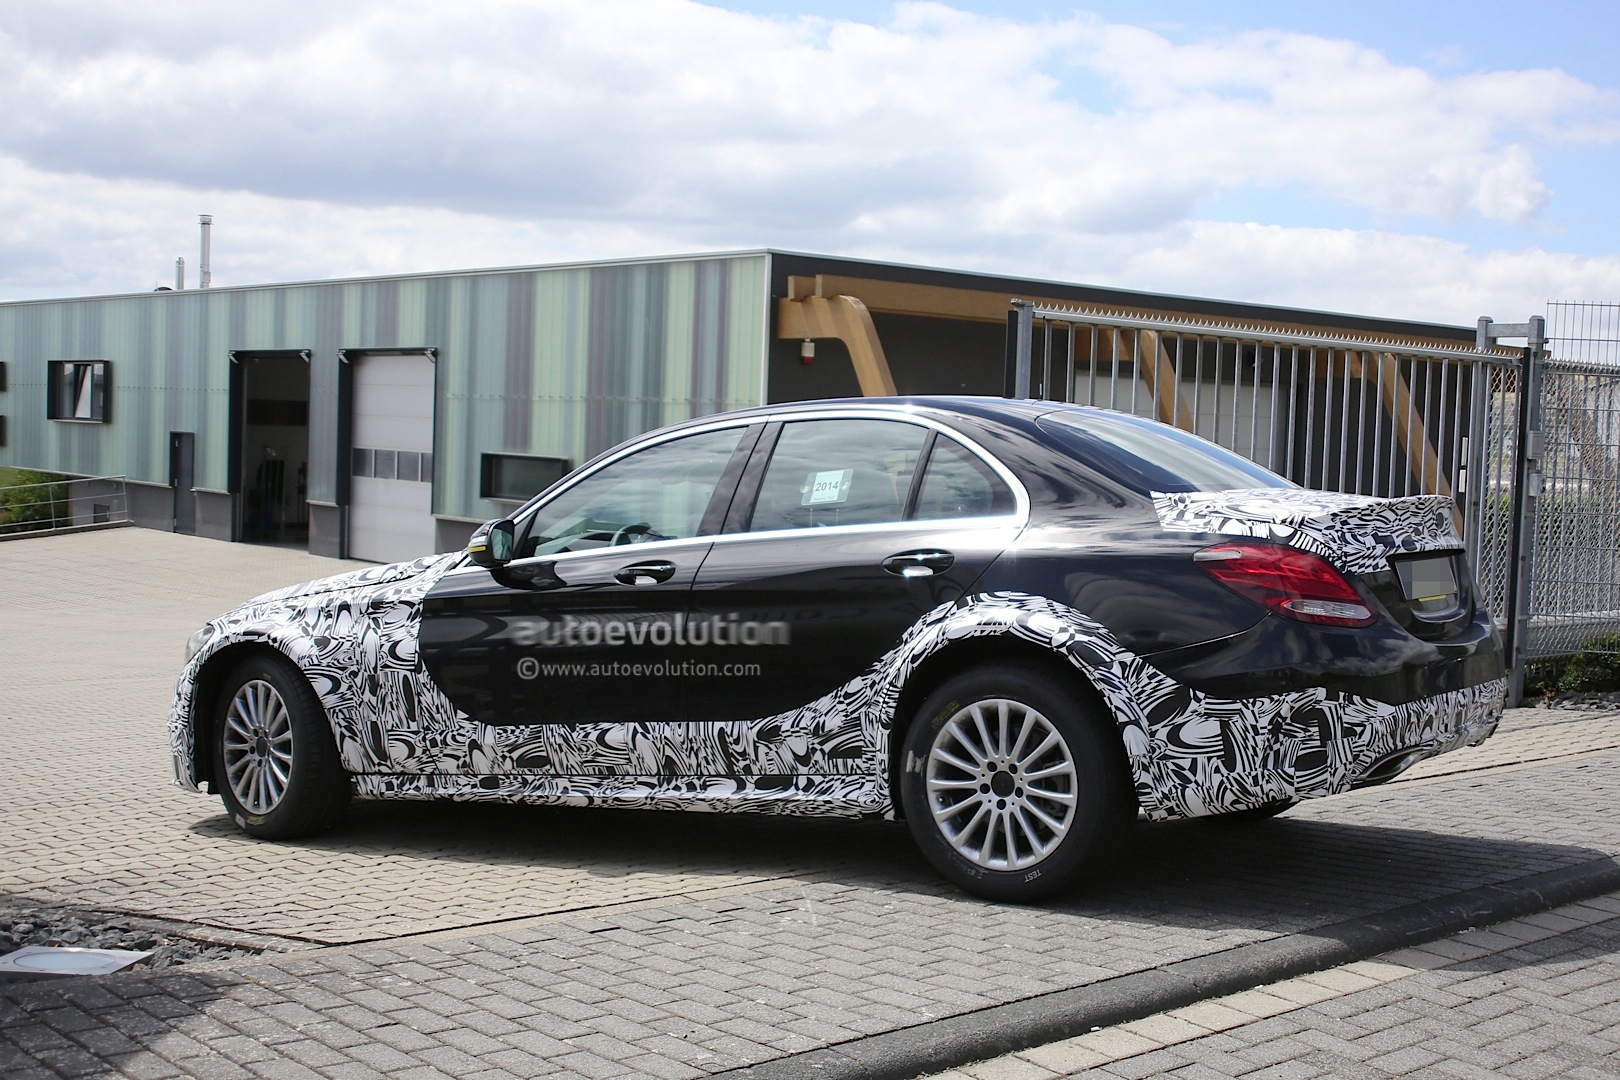 2016 - [Mercedes] Classe E [W213] - Page 2 E-class-w213-mule-based-on-current-c-class-spied-photo-gallery_11